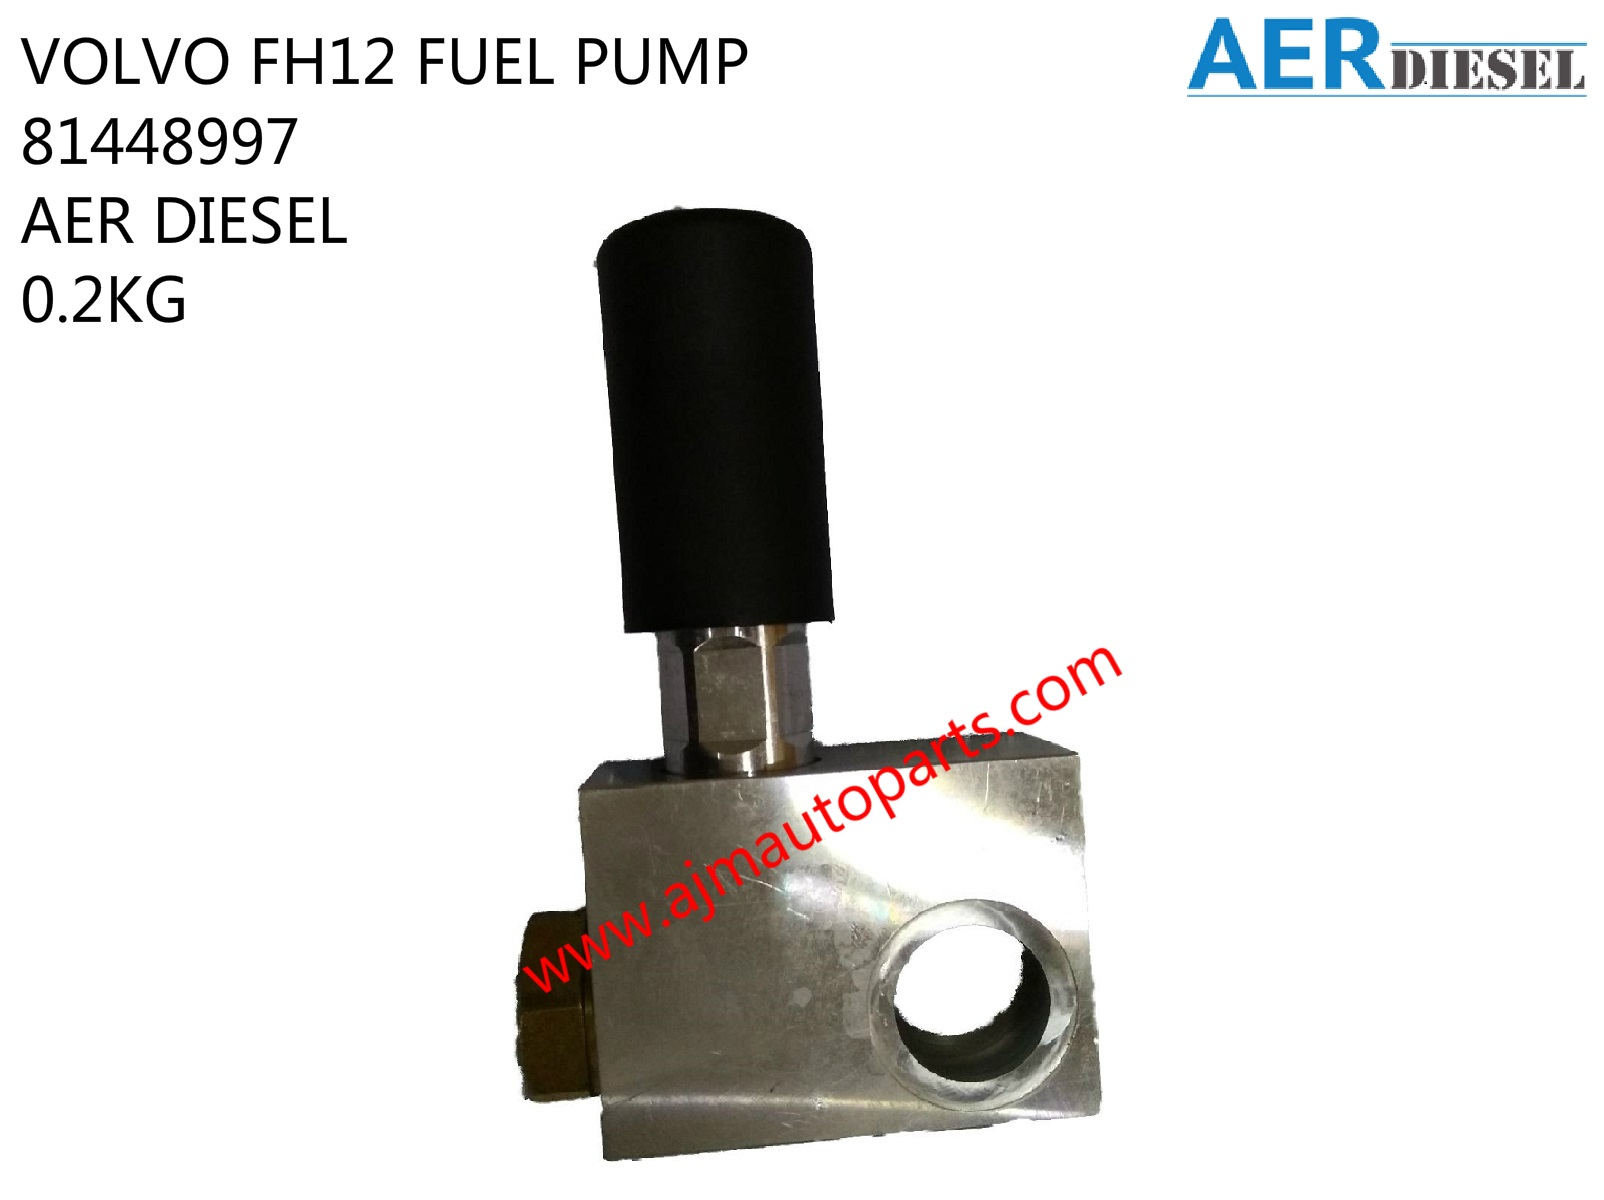 VOLVO FH12 FUEL PUMP-81448997